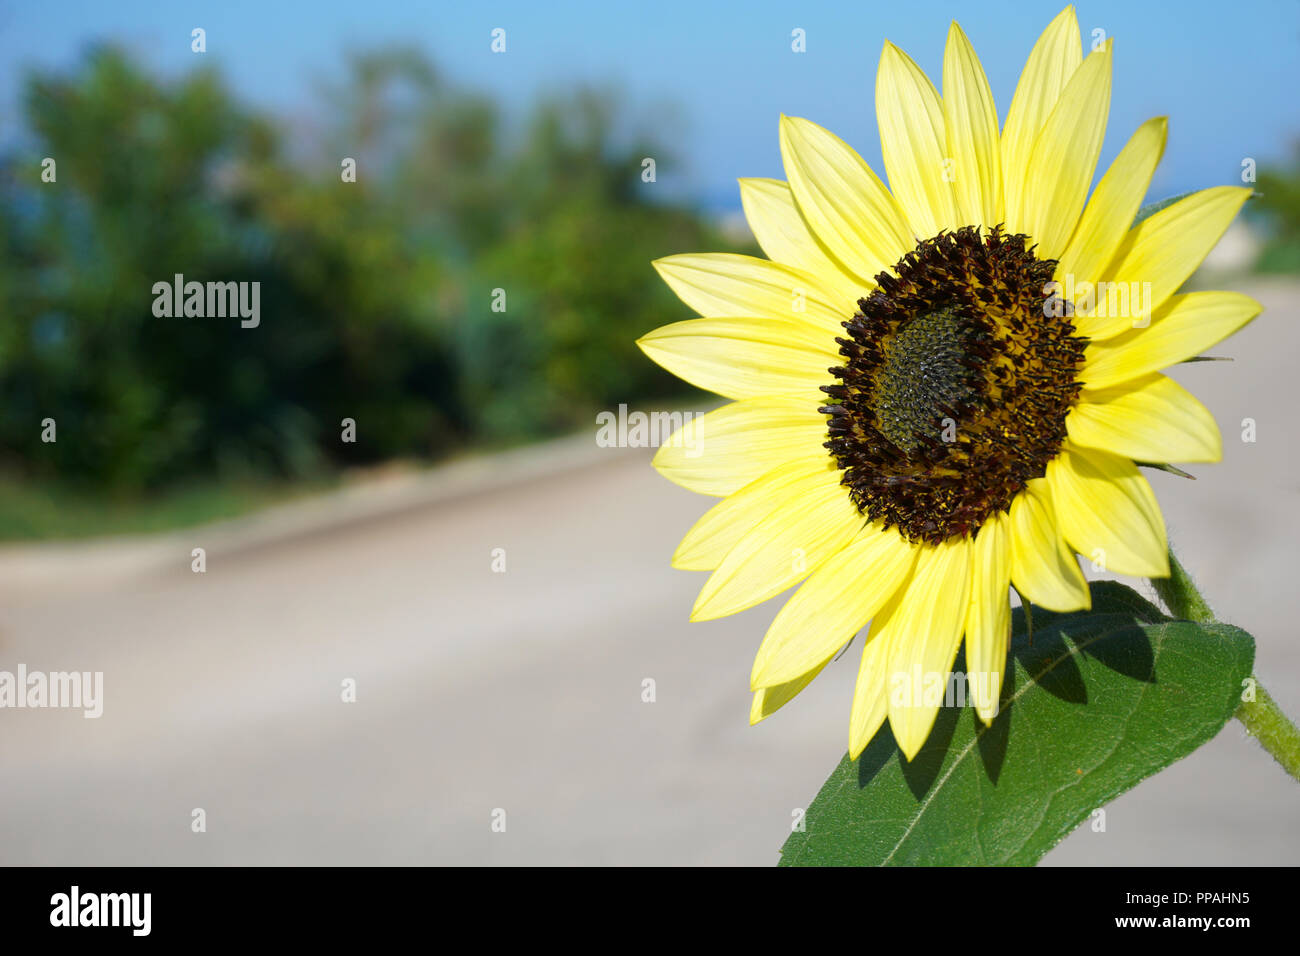 Yellow autumn sunflower outside close up in blurred rural landscape on the sunny day in autumn - Stock Image